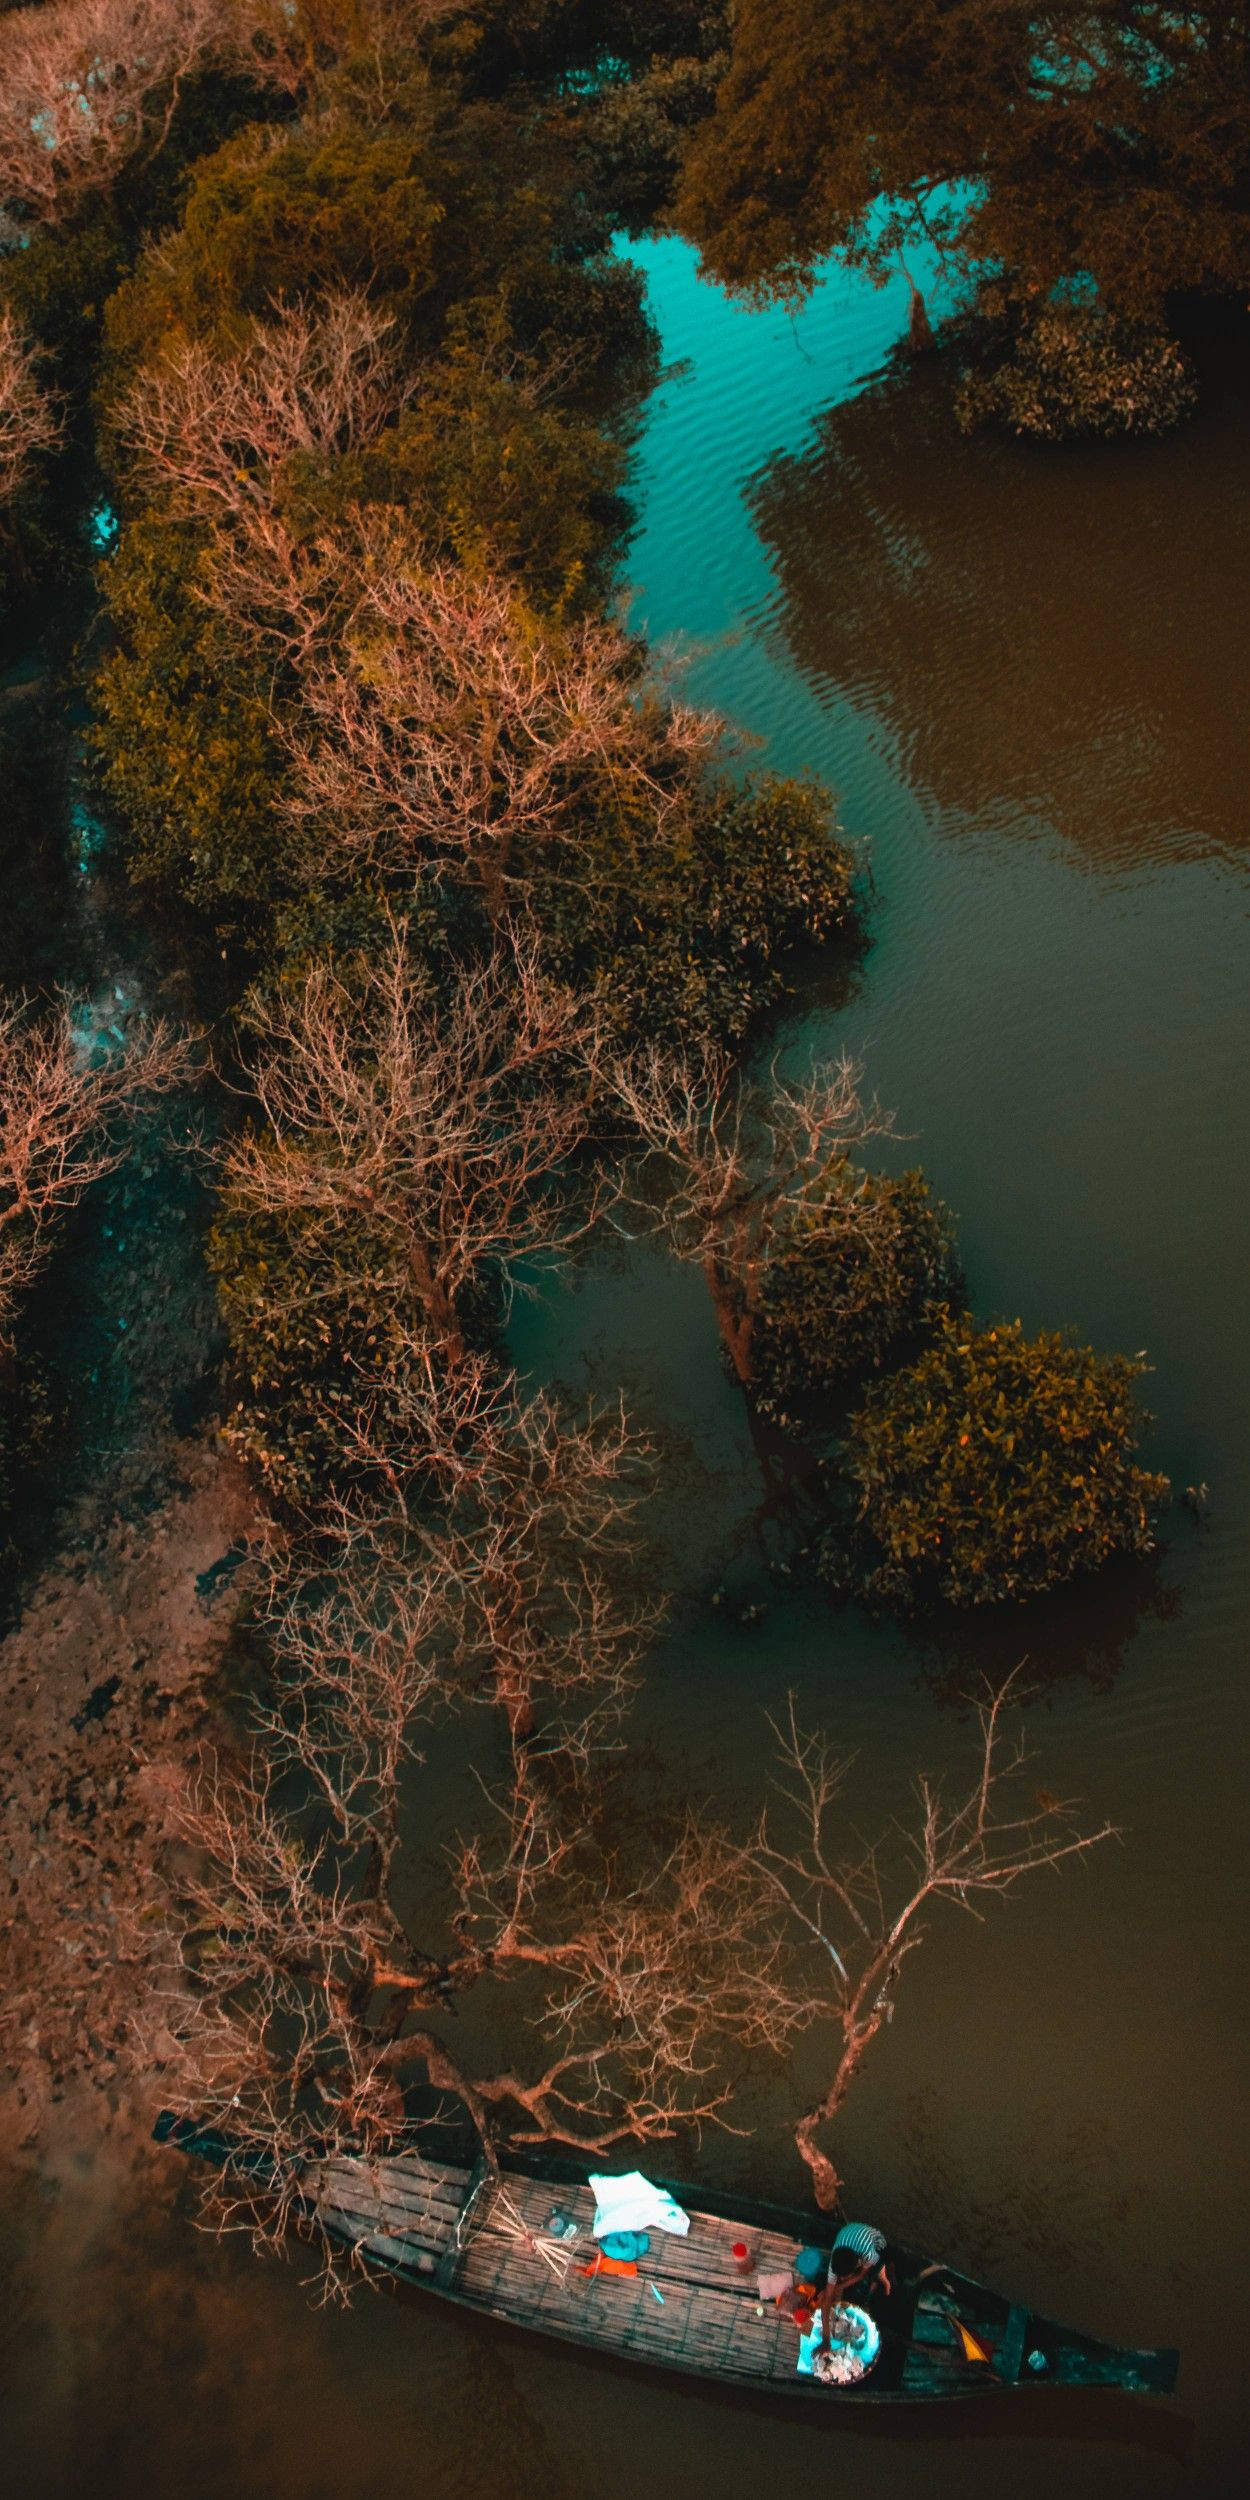 Pin By Lucky Dwiharto On Drones Photography Drone Photography Wallpaper Backgrounds Background